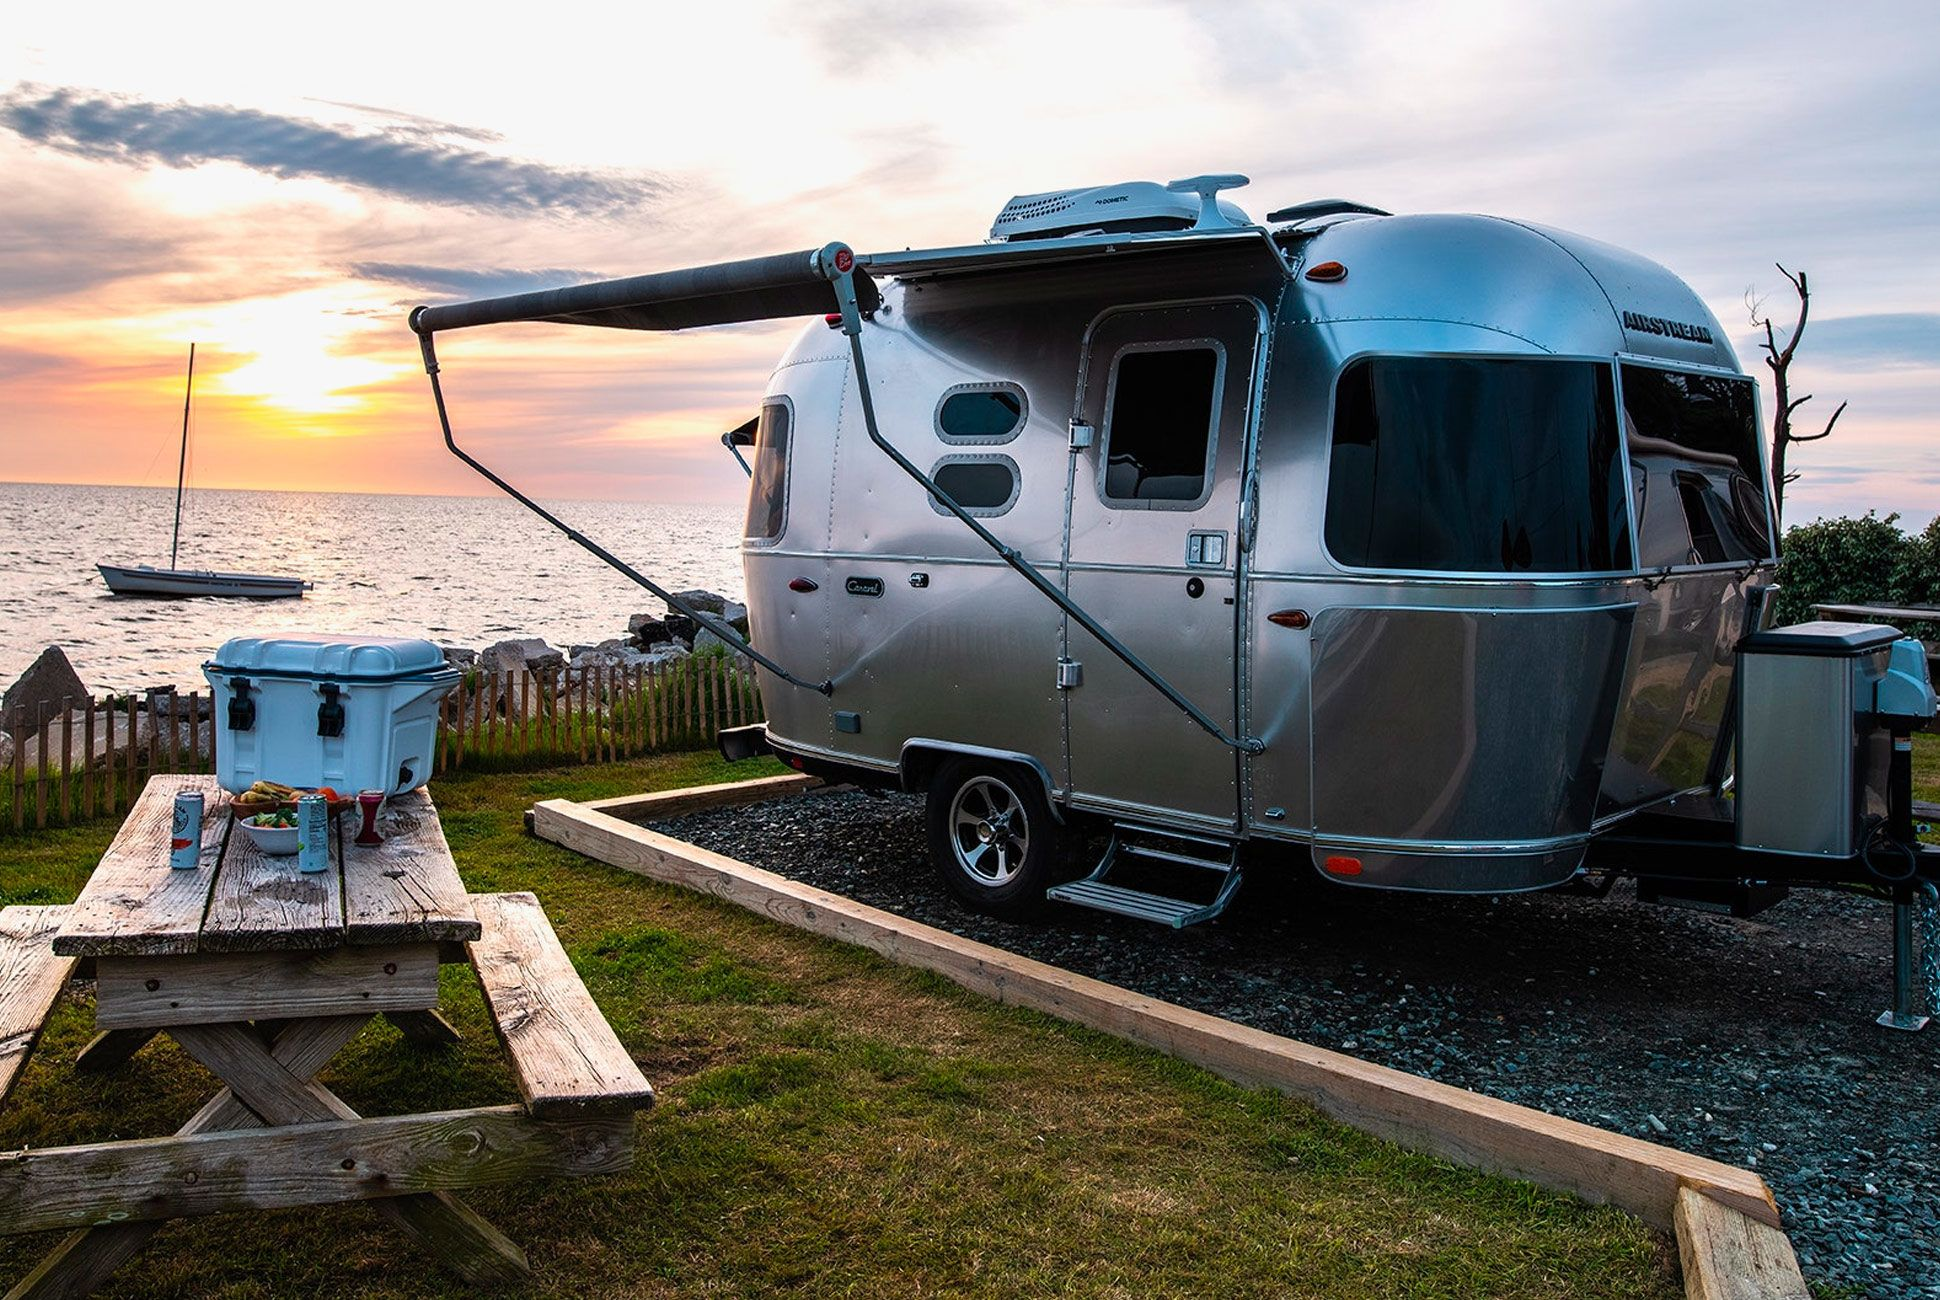 Airstream-Bambi-and-Caravel-Travel-Trailers-gear-patrol-slide-2